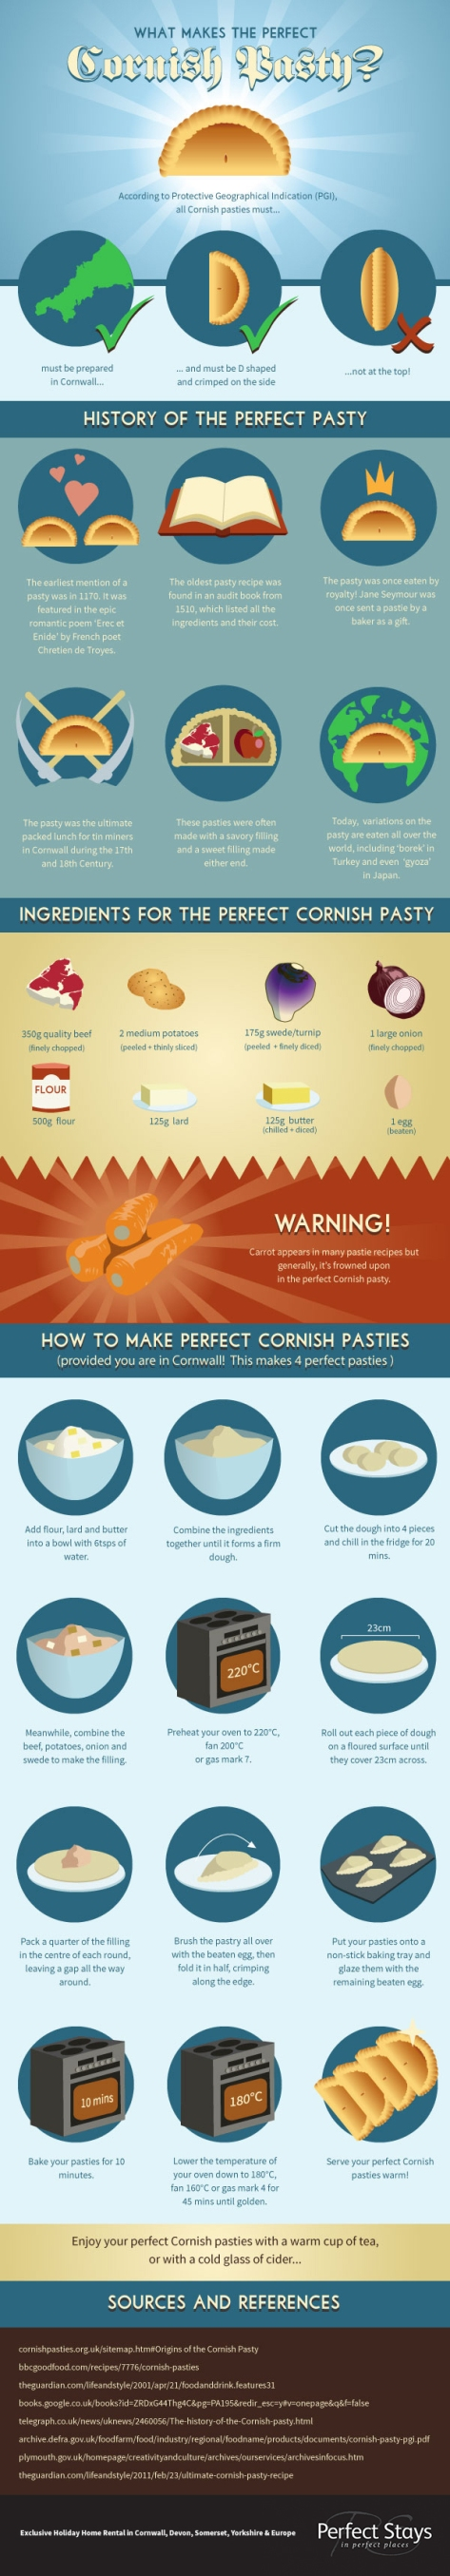 what-makes-the-perfect-cornish-pasty_525d20dd69a4d